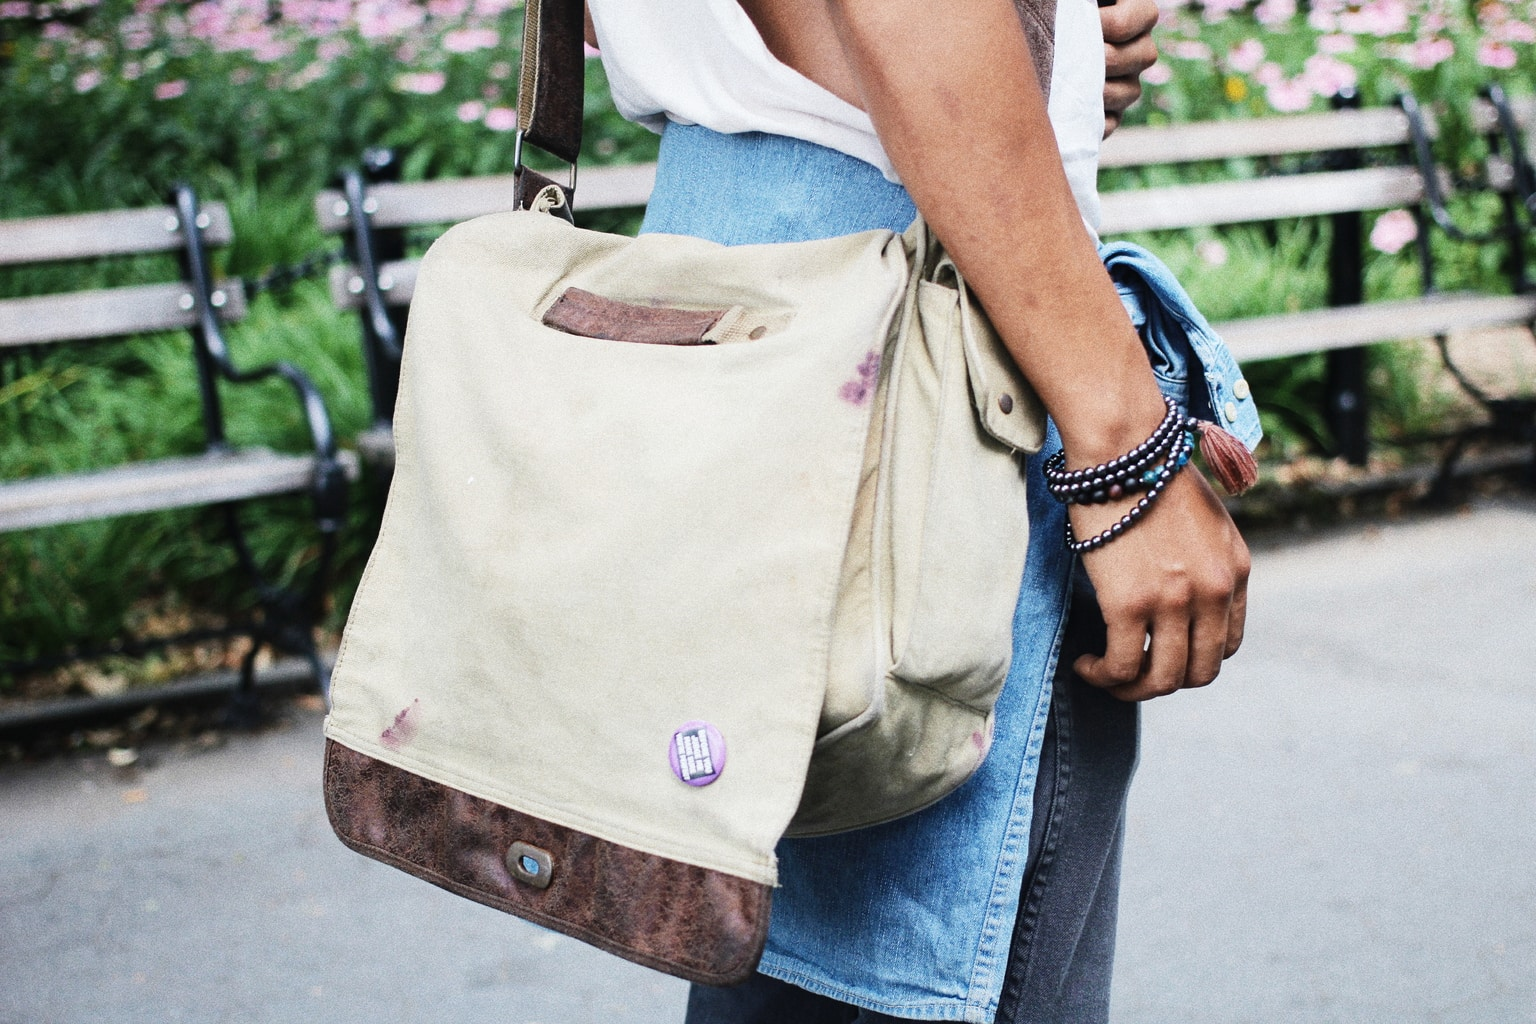 Vintage messenger bag on campus at NYU - guy's style